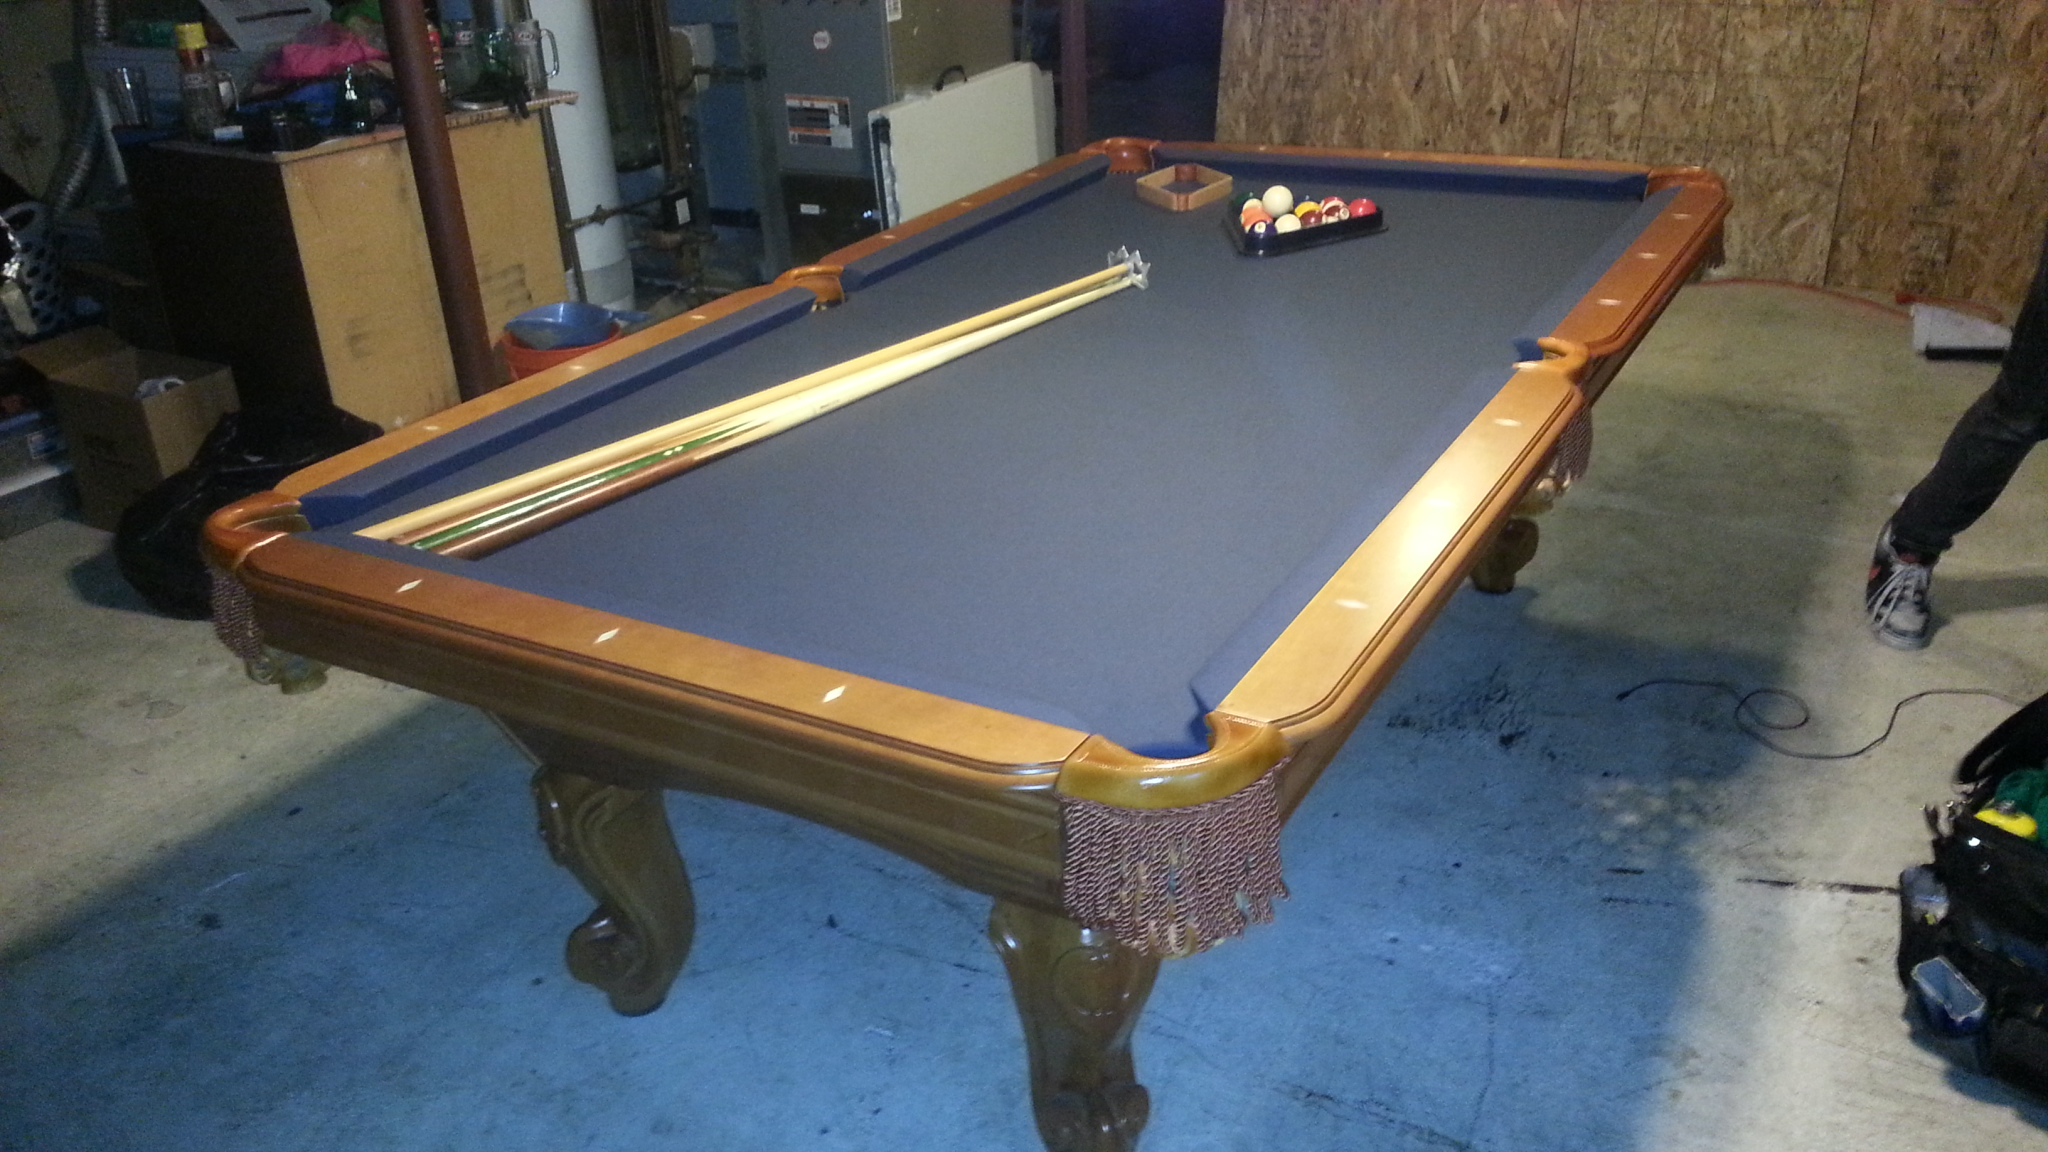 Pool Table Movers In Denver - Pool table movers denver